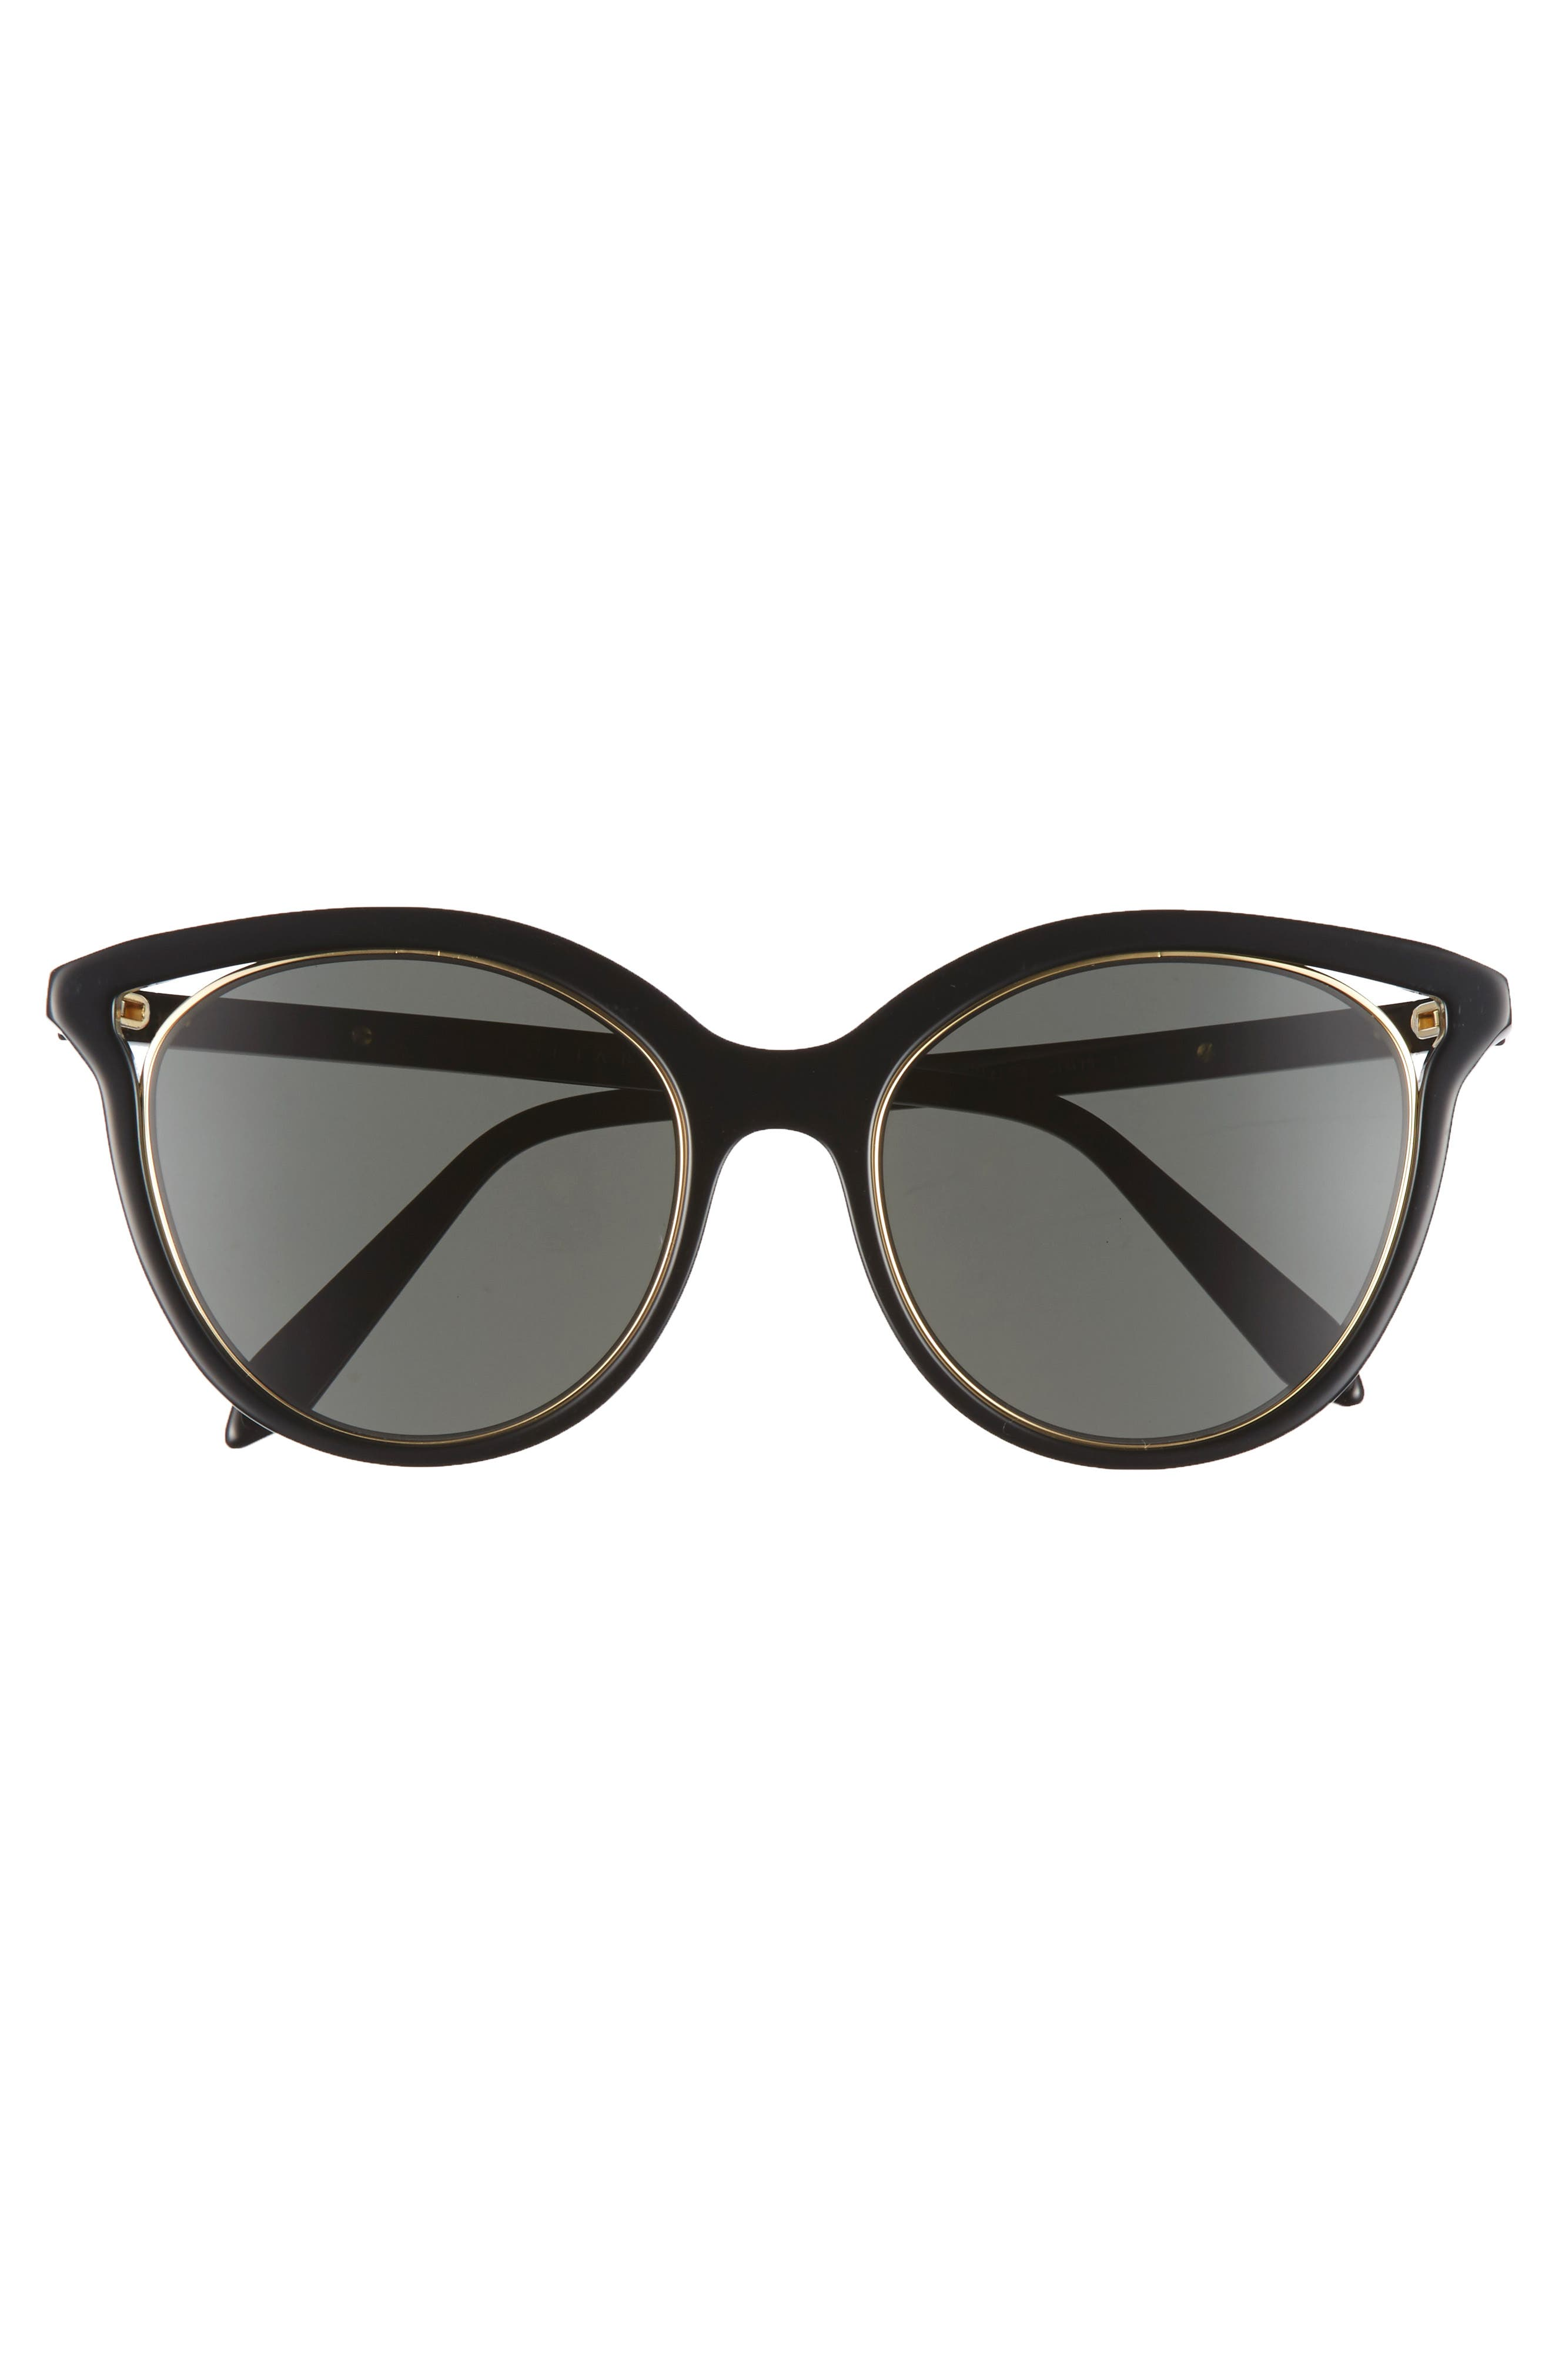 Cutaway Kitten 54mm Cat Eye Sunglasses,                             Alternate thumbnail 3, color,                             BLACK/ GOLD